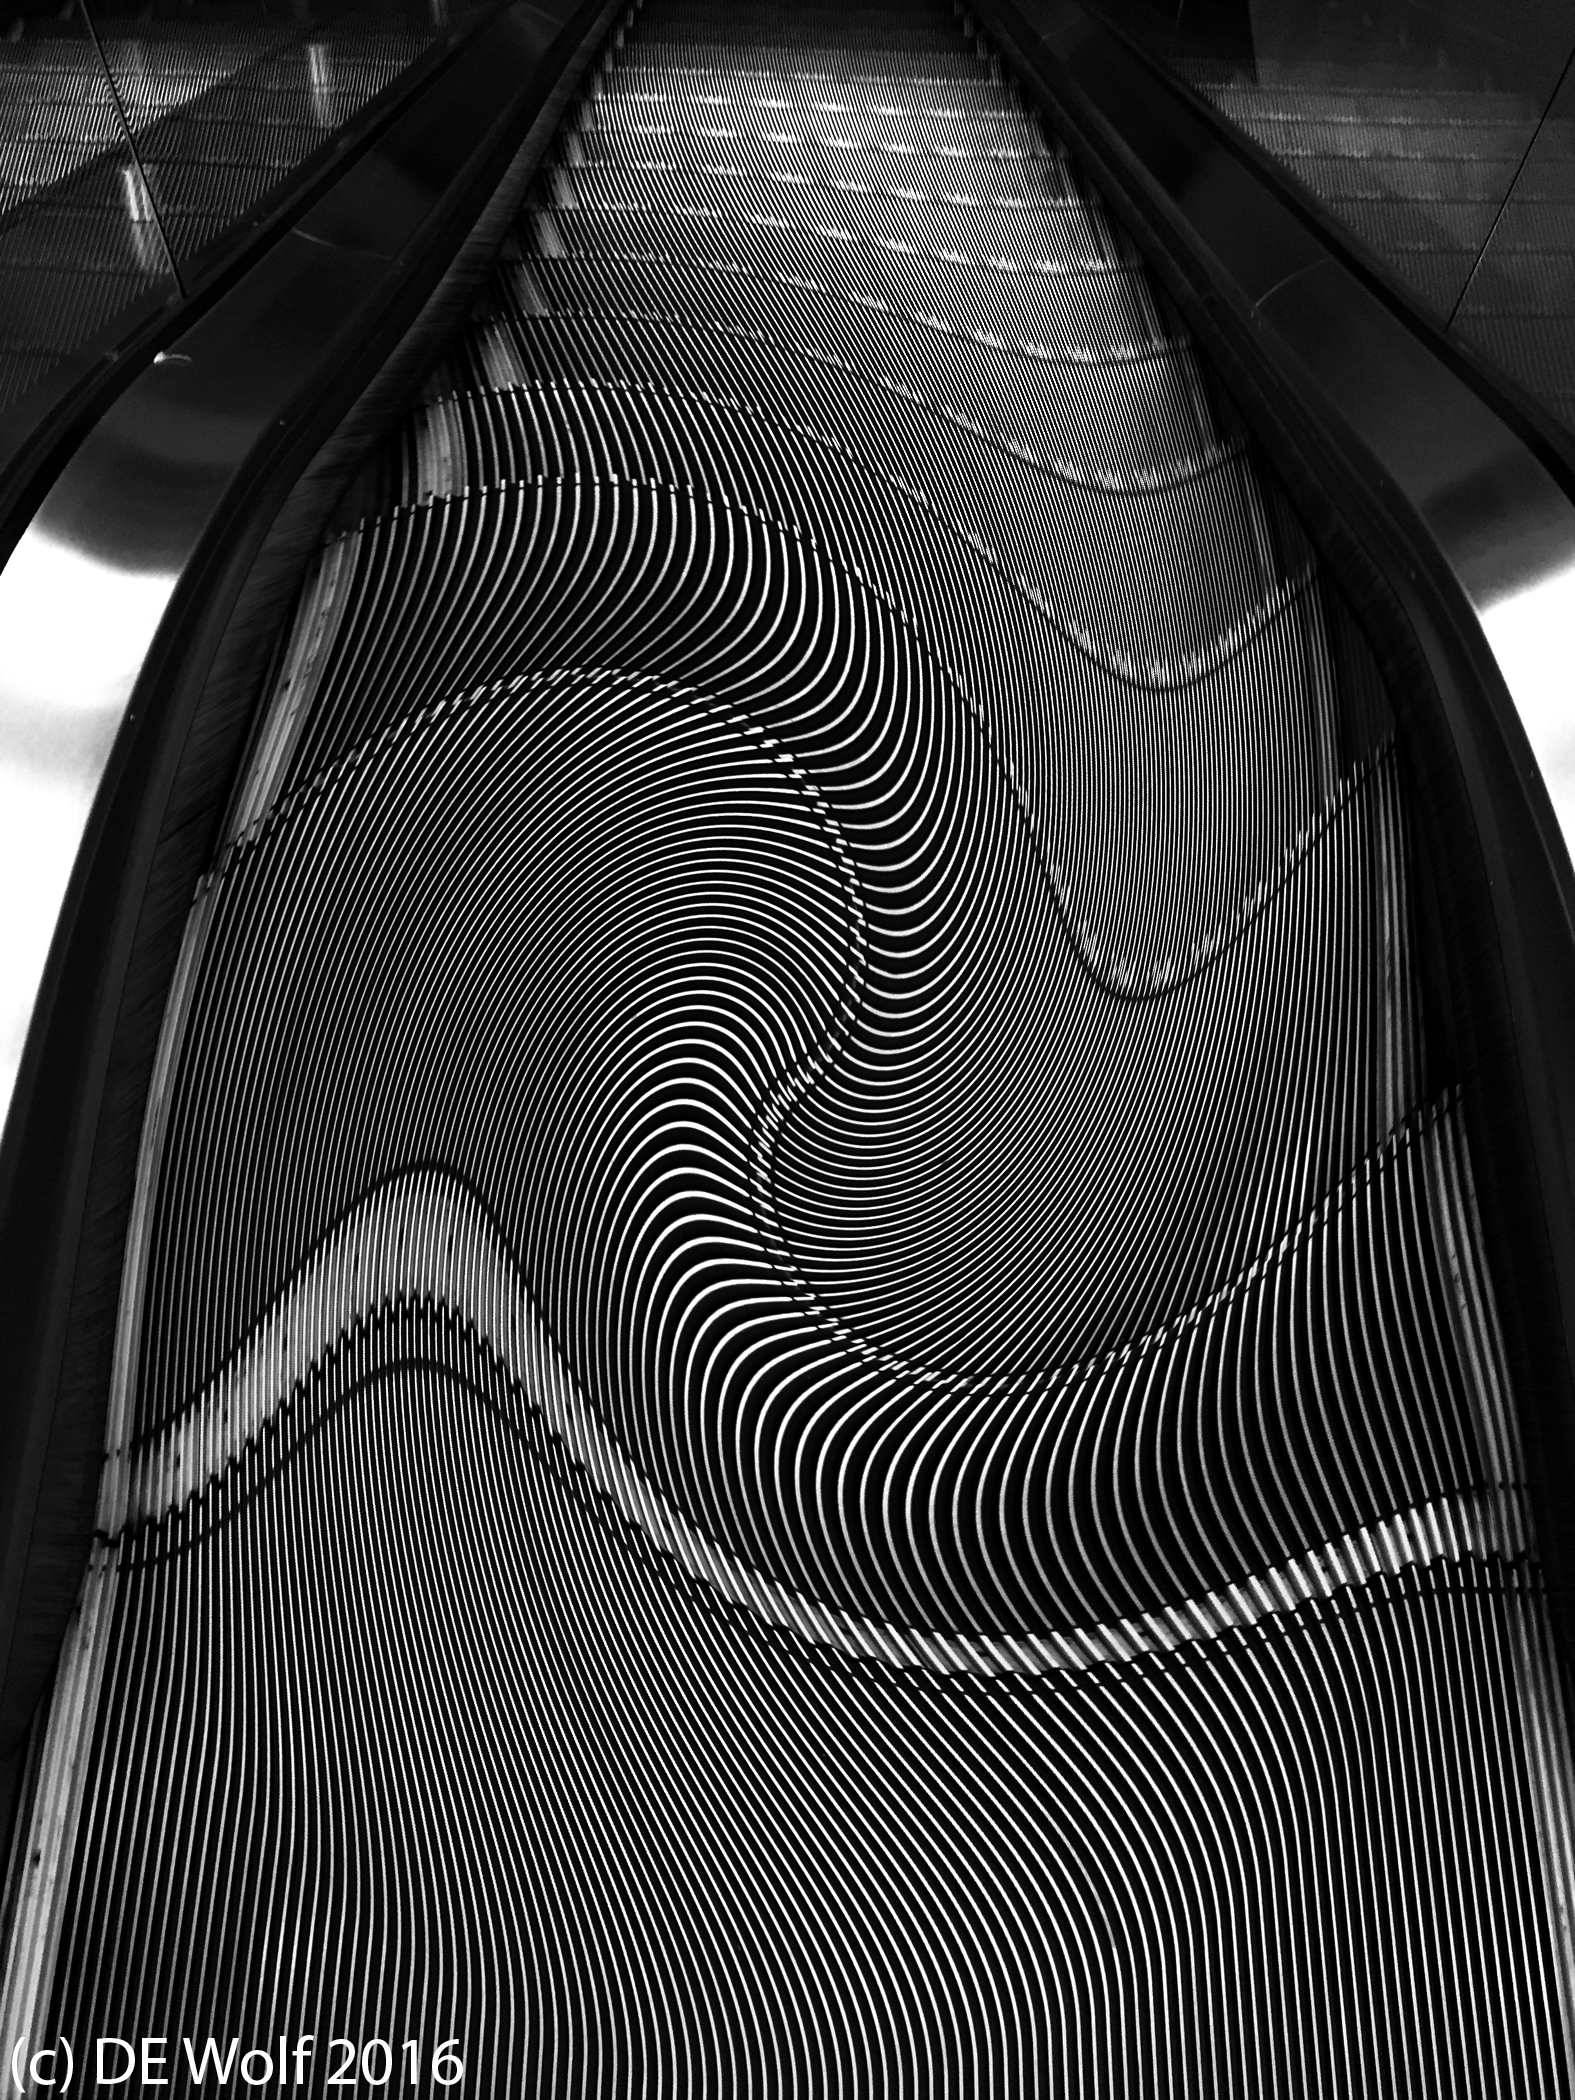 Figure 1 - Escalator with bifocals. Natick, MA, (c) DE Wolf 2016.